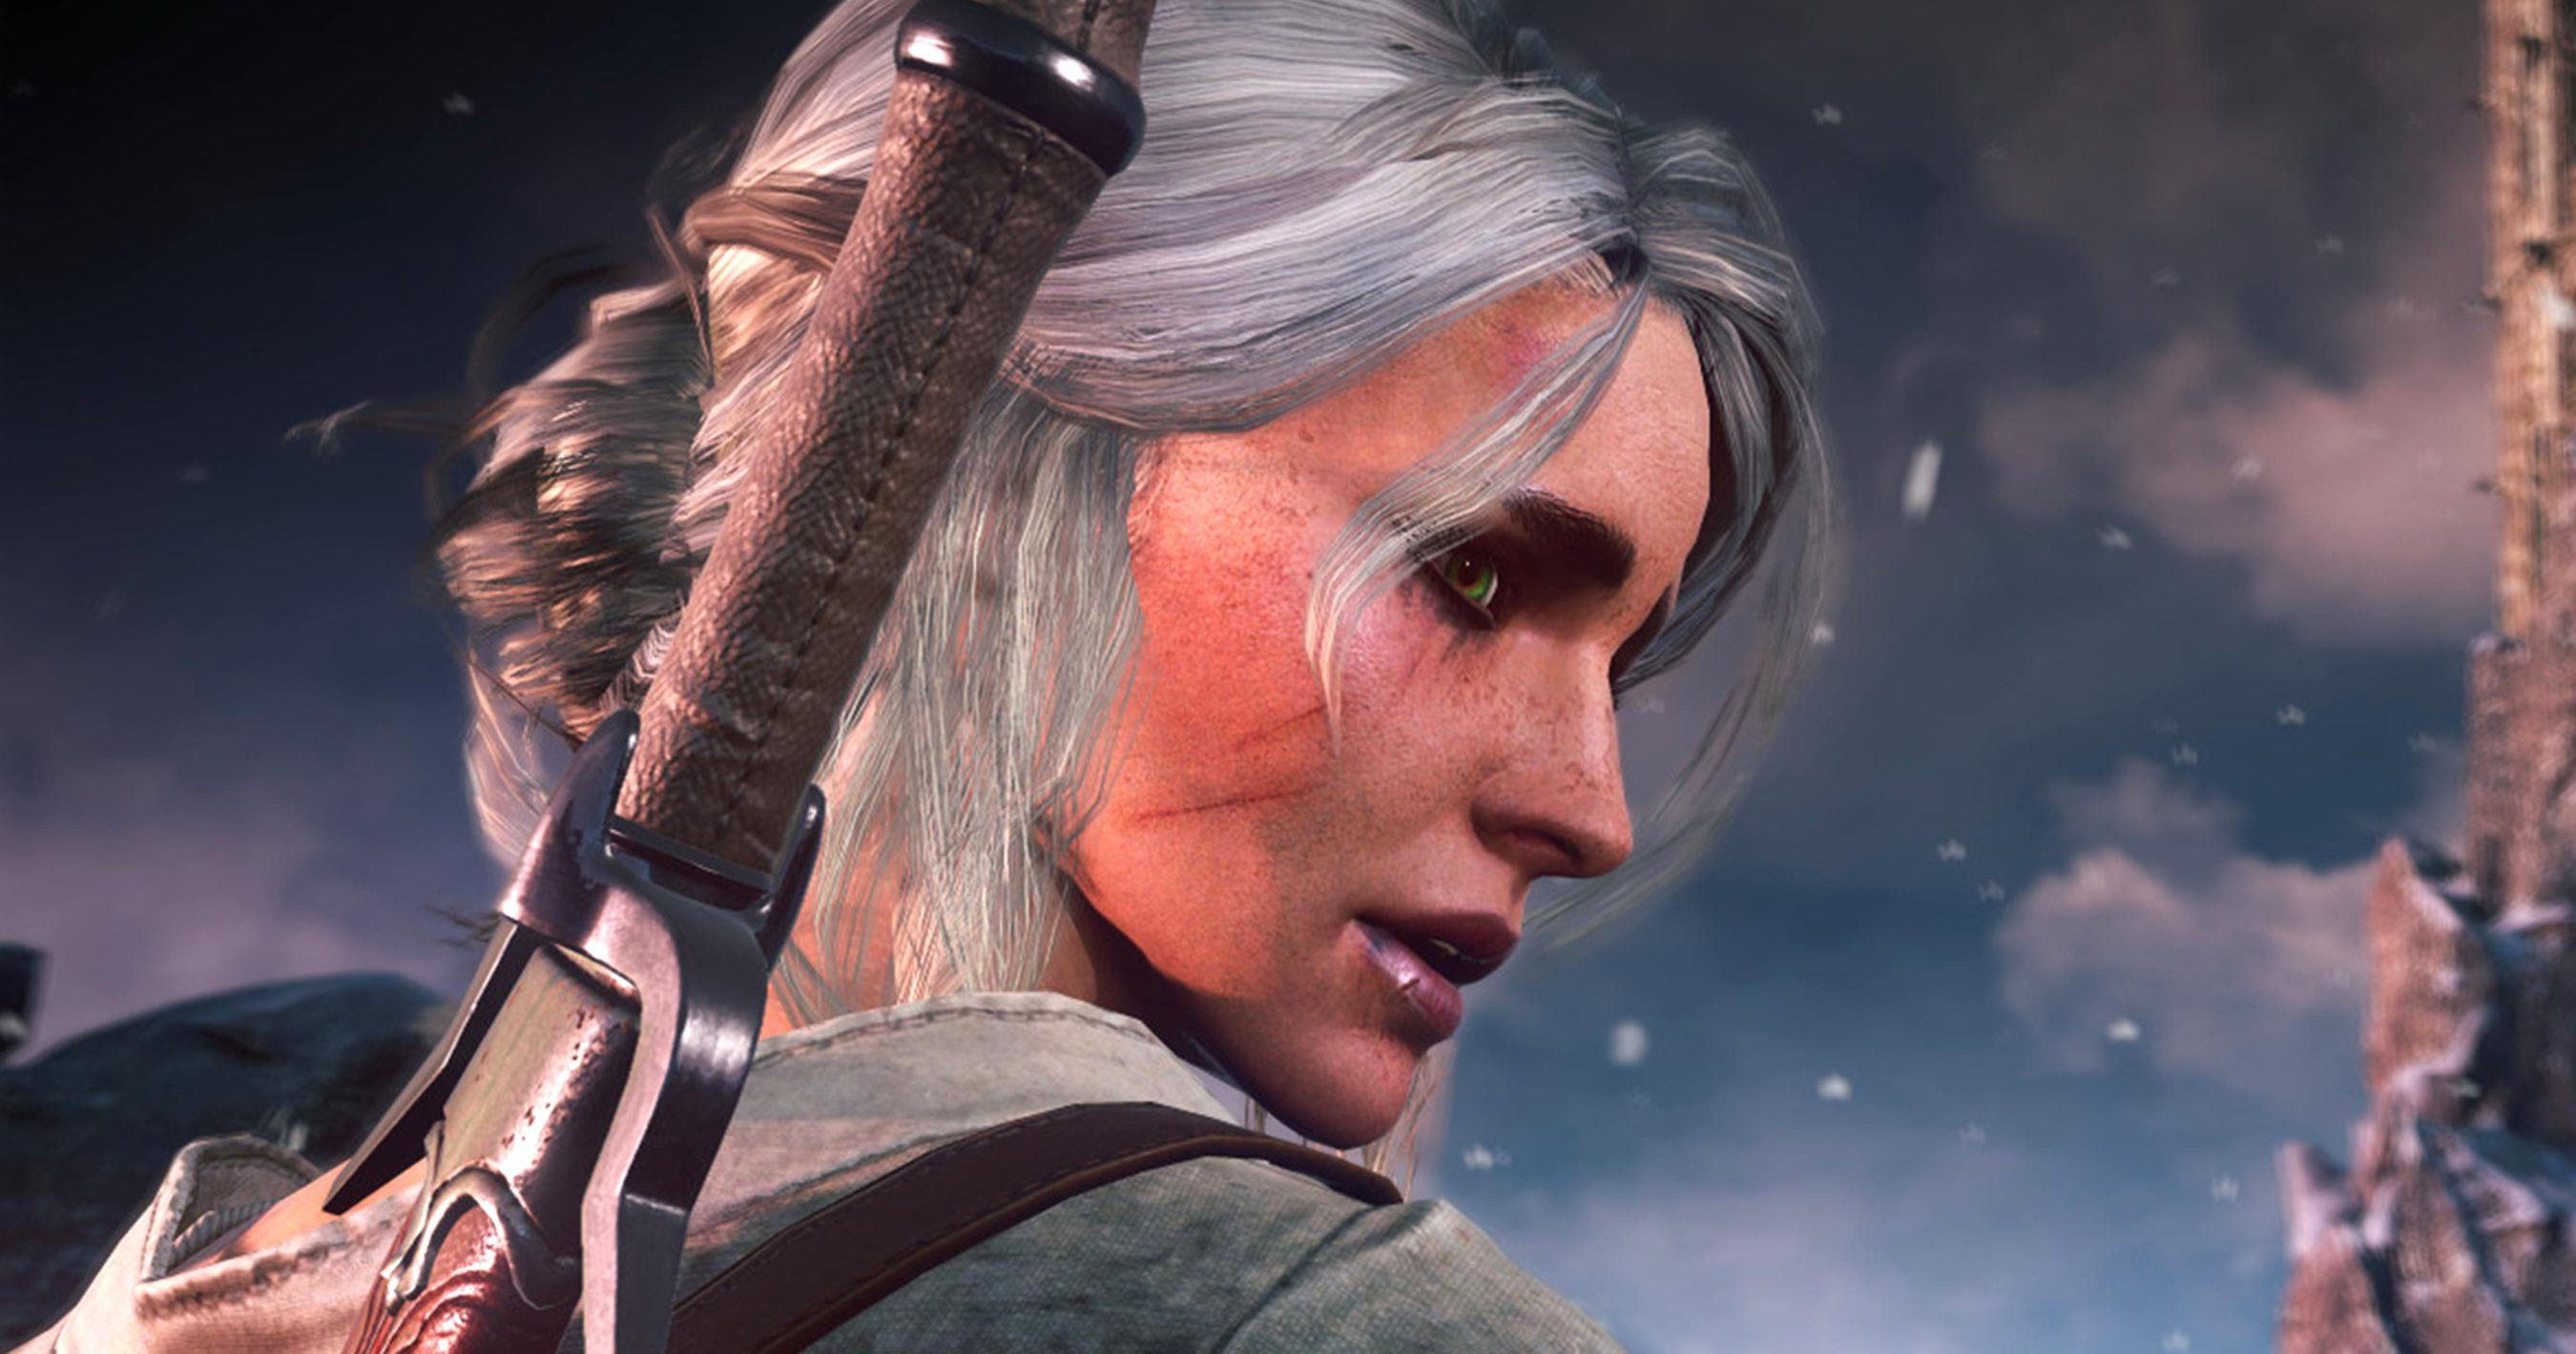 The Witcher showrunner takes Twitter hiatus after Netflix